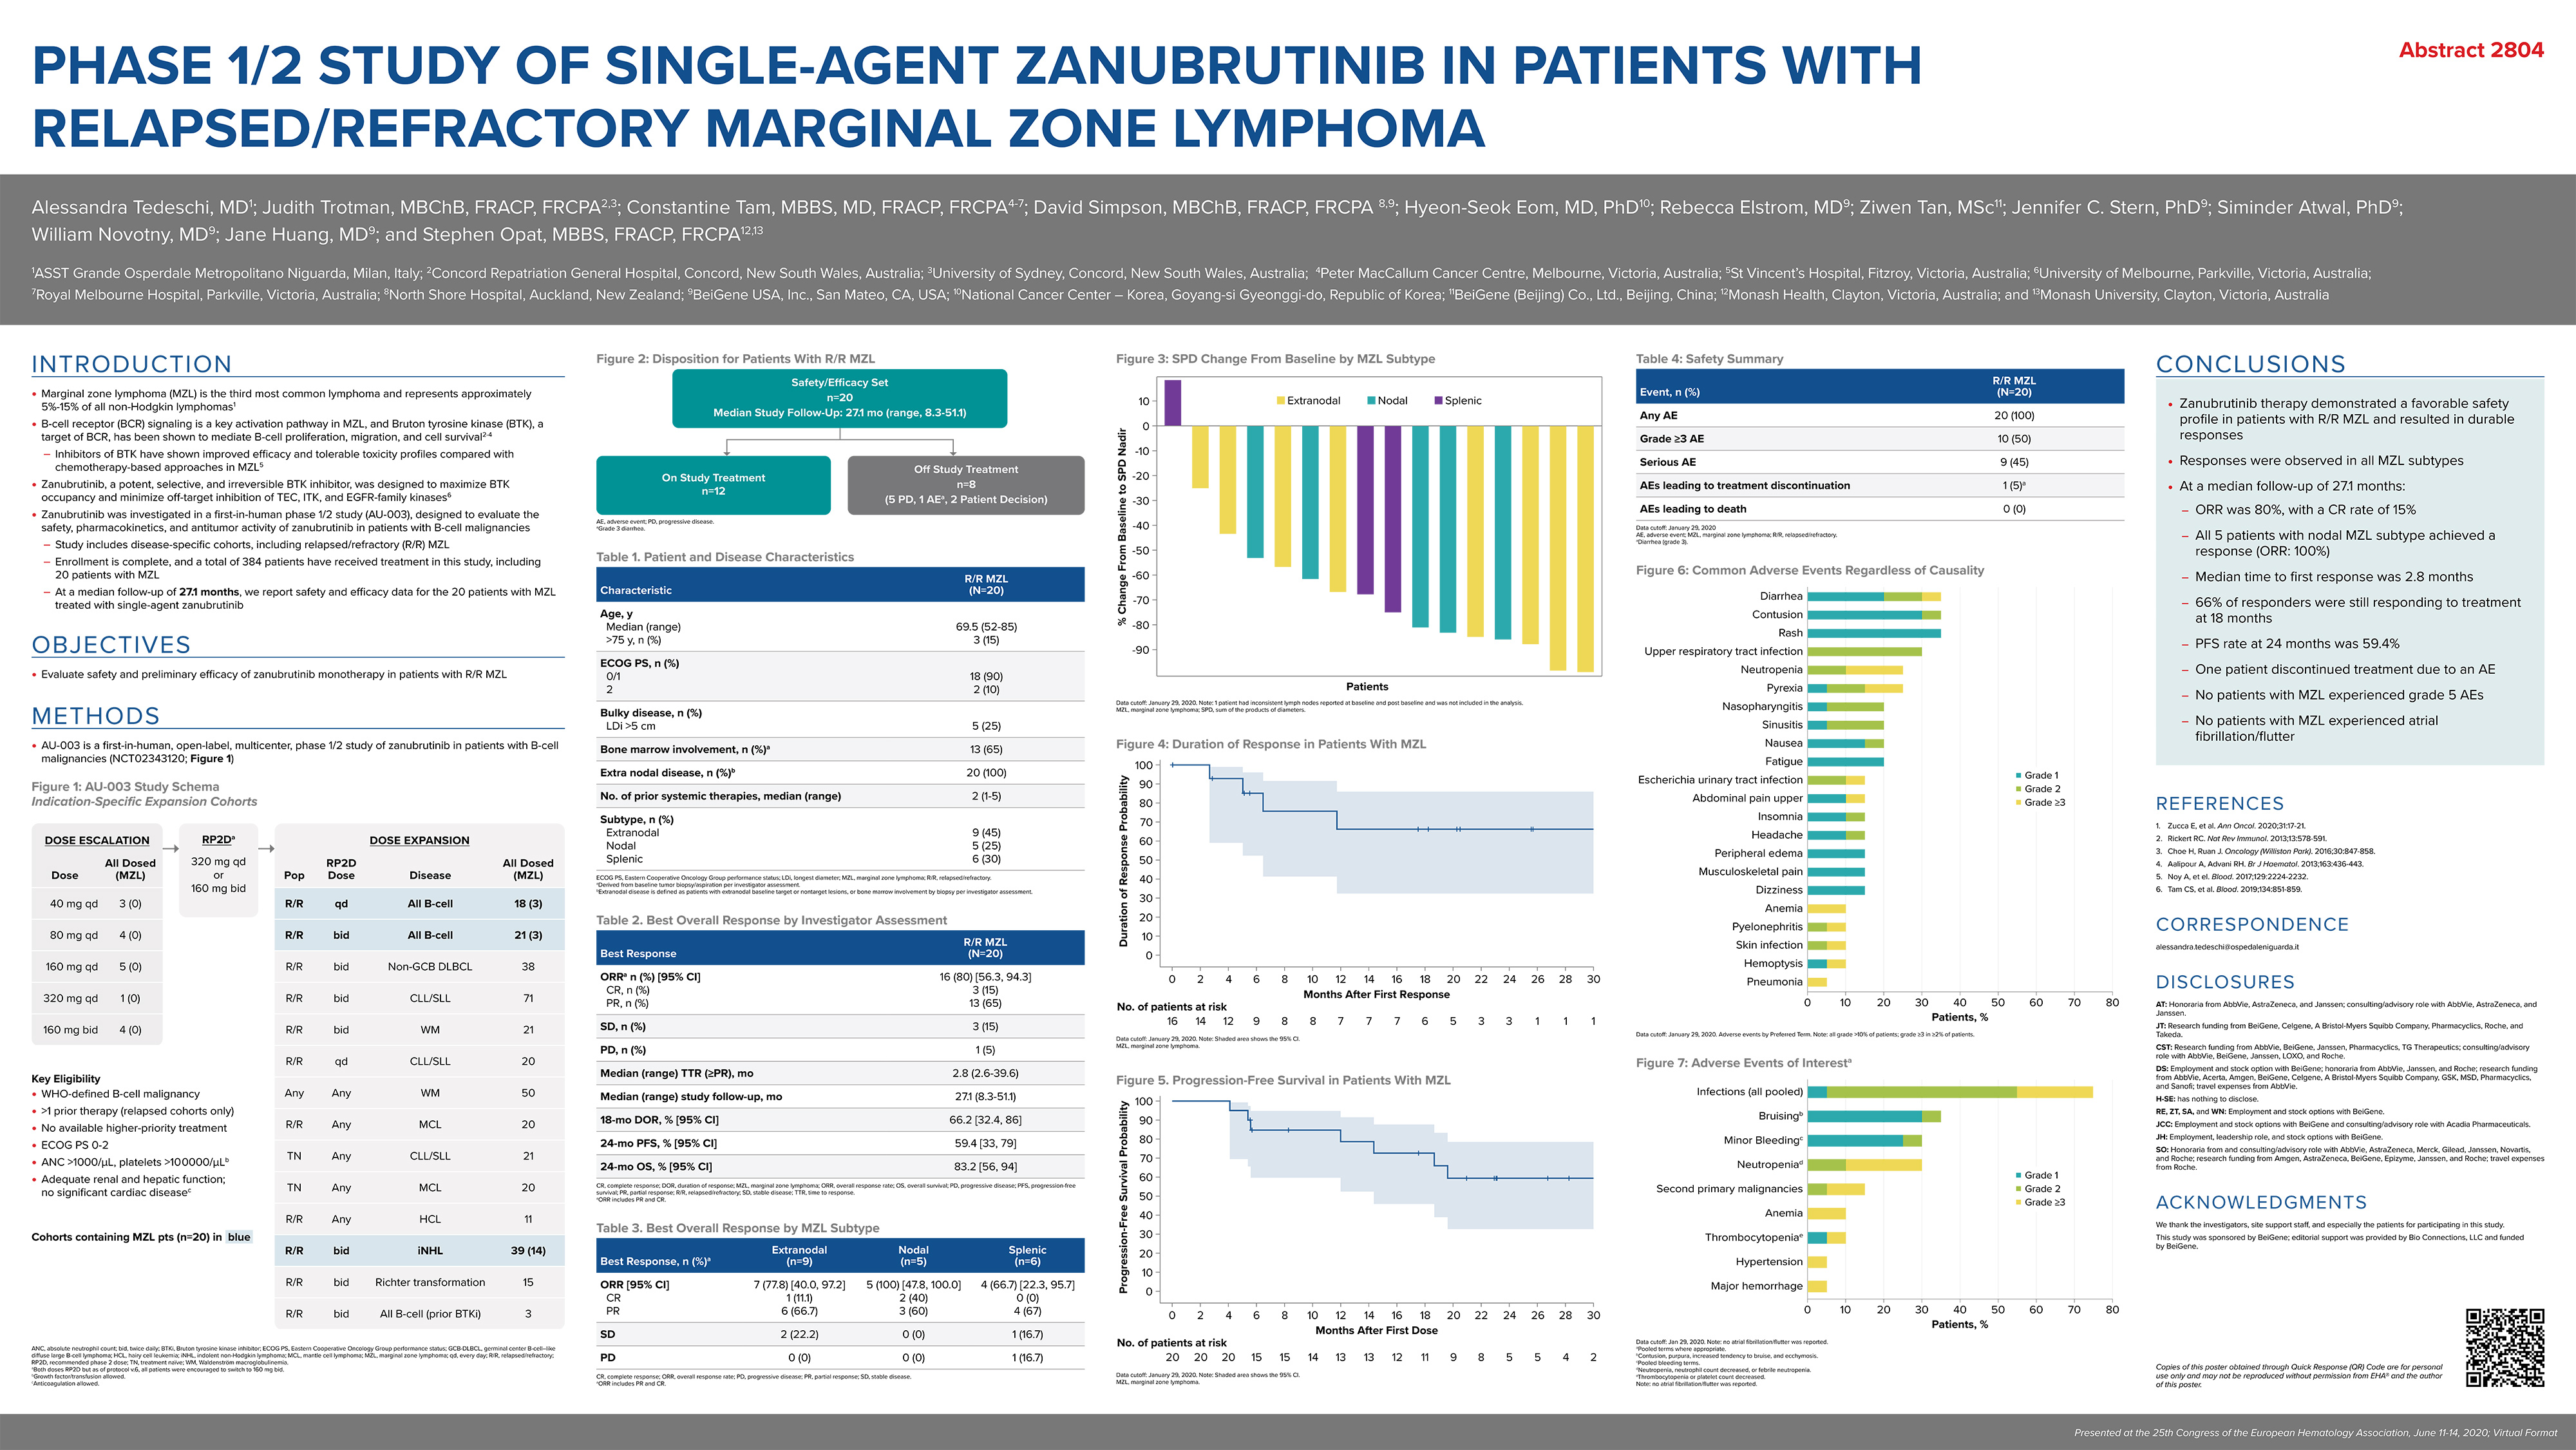 Phase 1/2 study of single‑agent Zanubrutinib in patients with relapsed / refractory marginal zone lymphoma